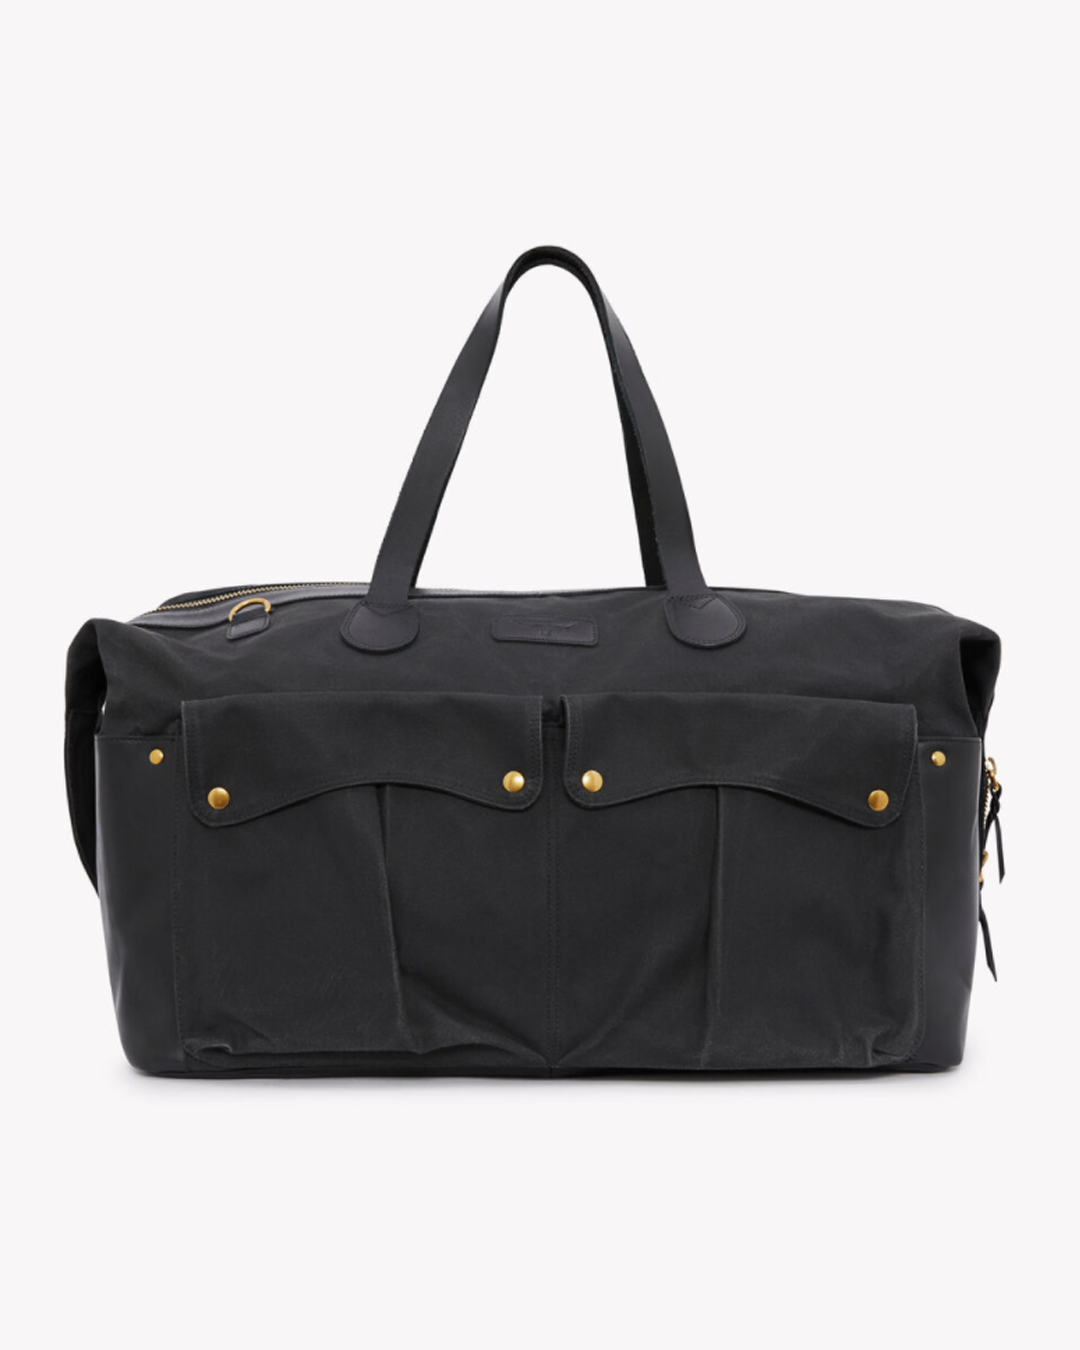 A masculine black canvas duffle bag with leather handles and gold accents